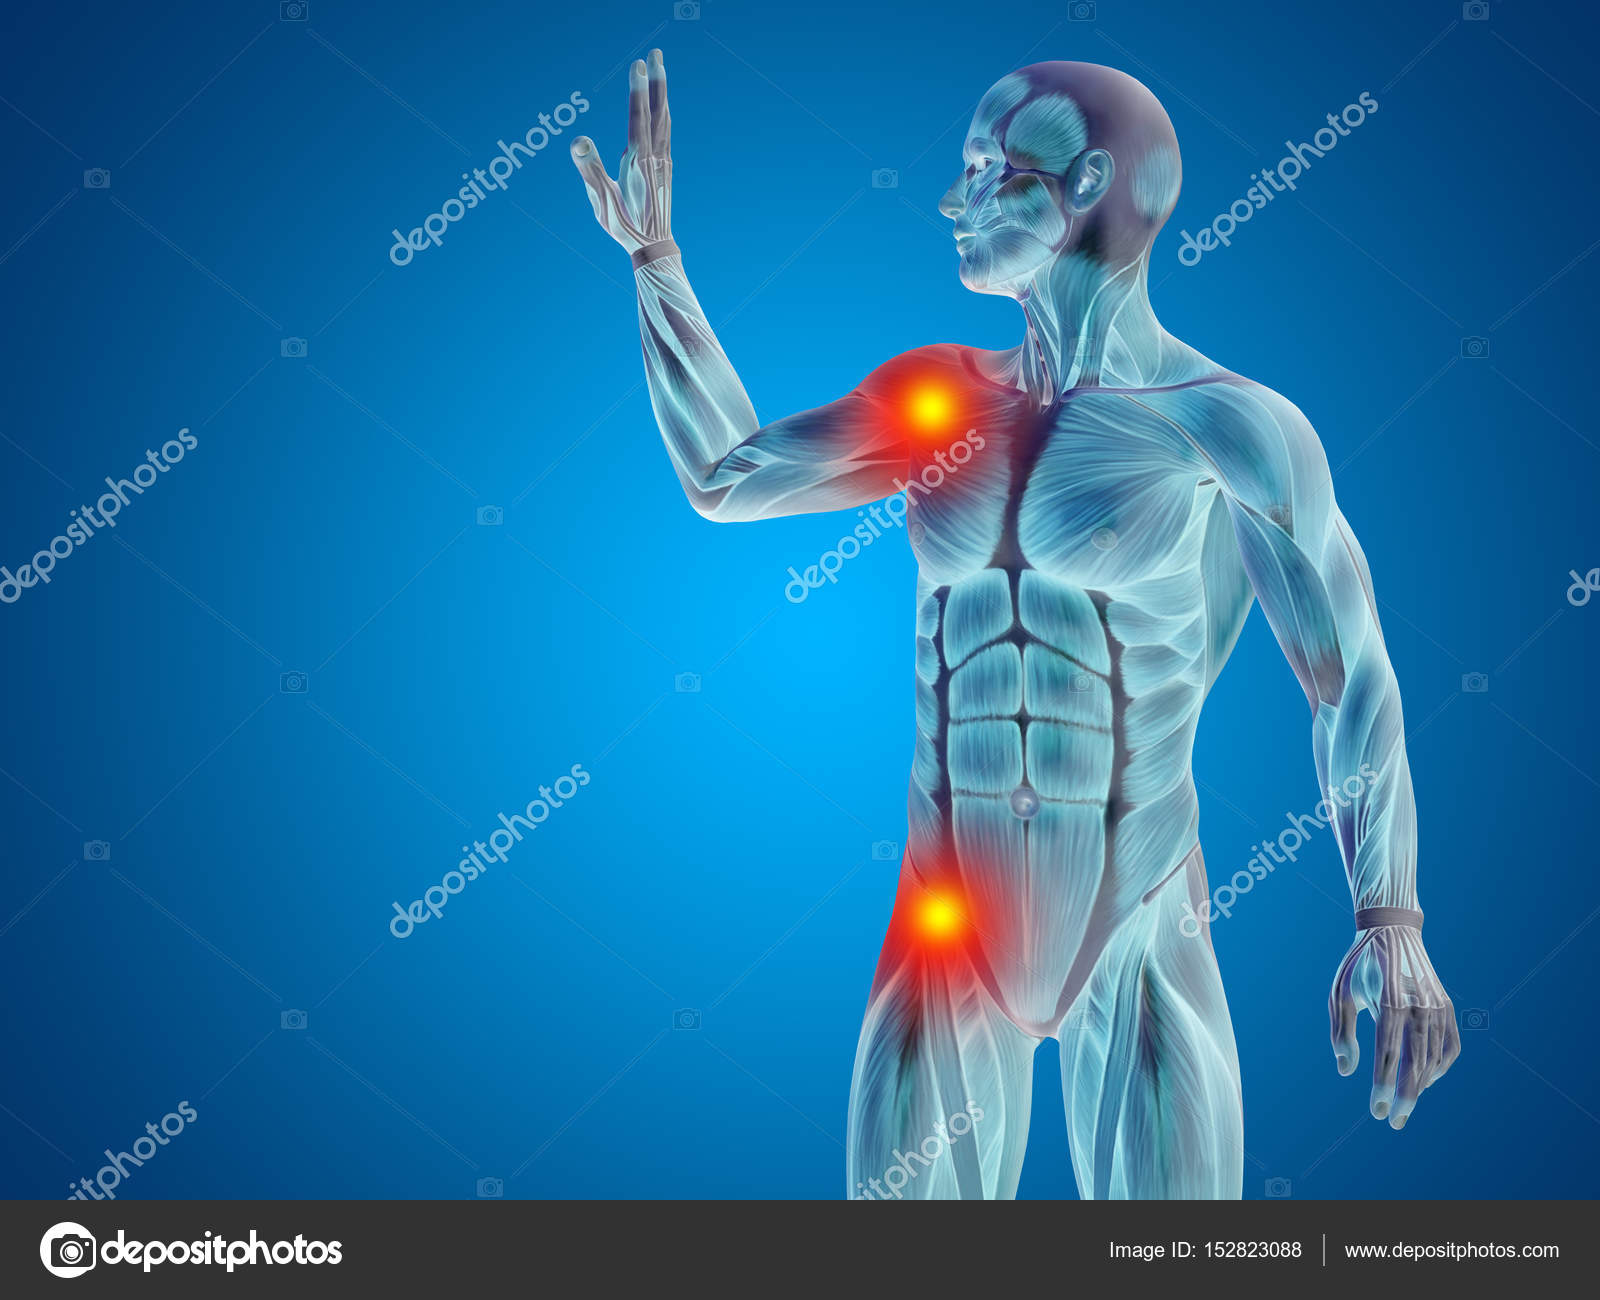 Male Upper Body Anatomy Stock Photo Design36 152823088